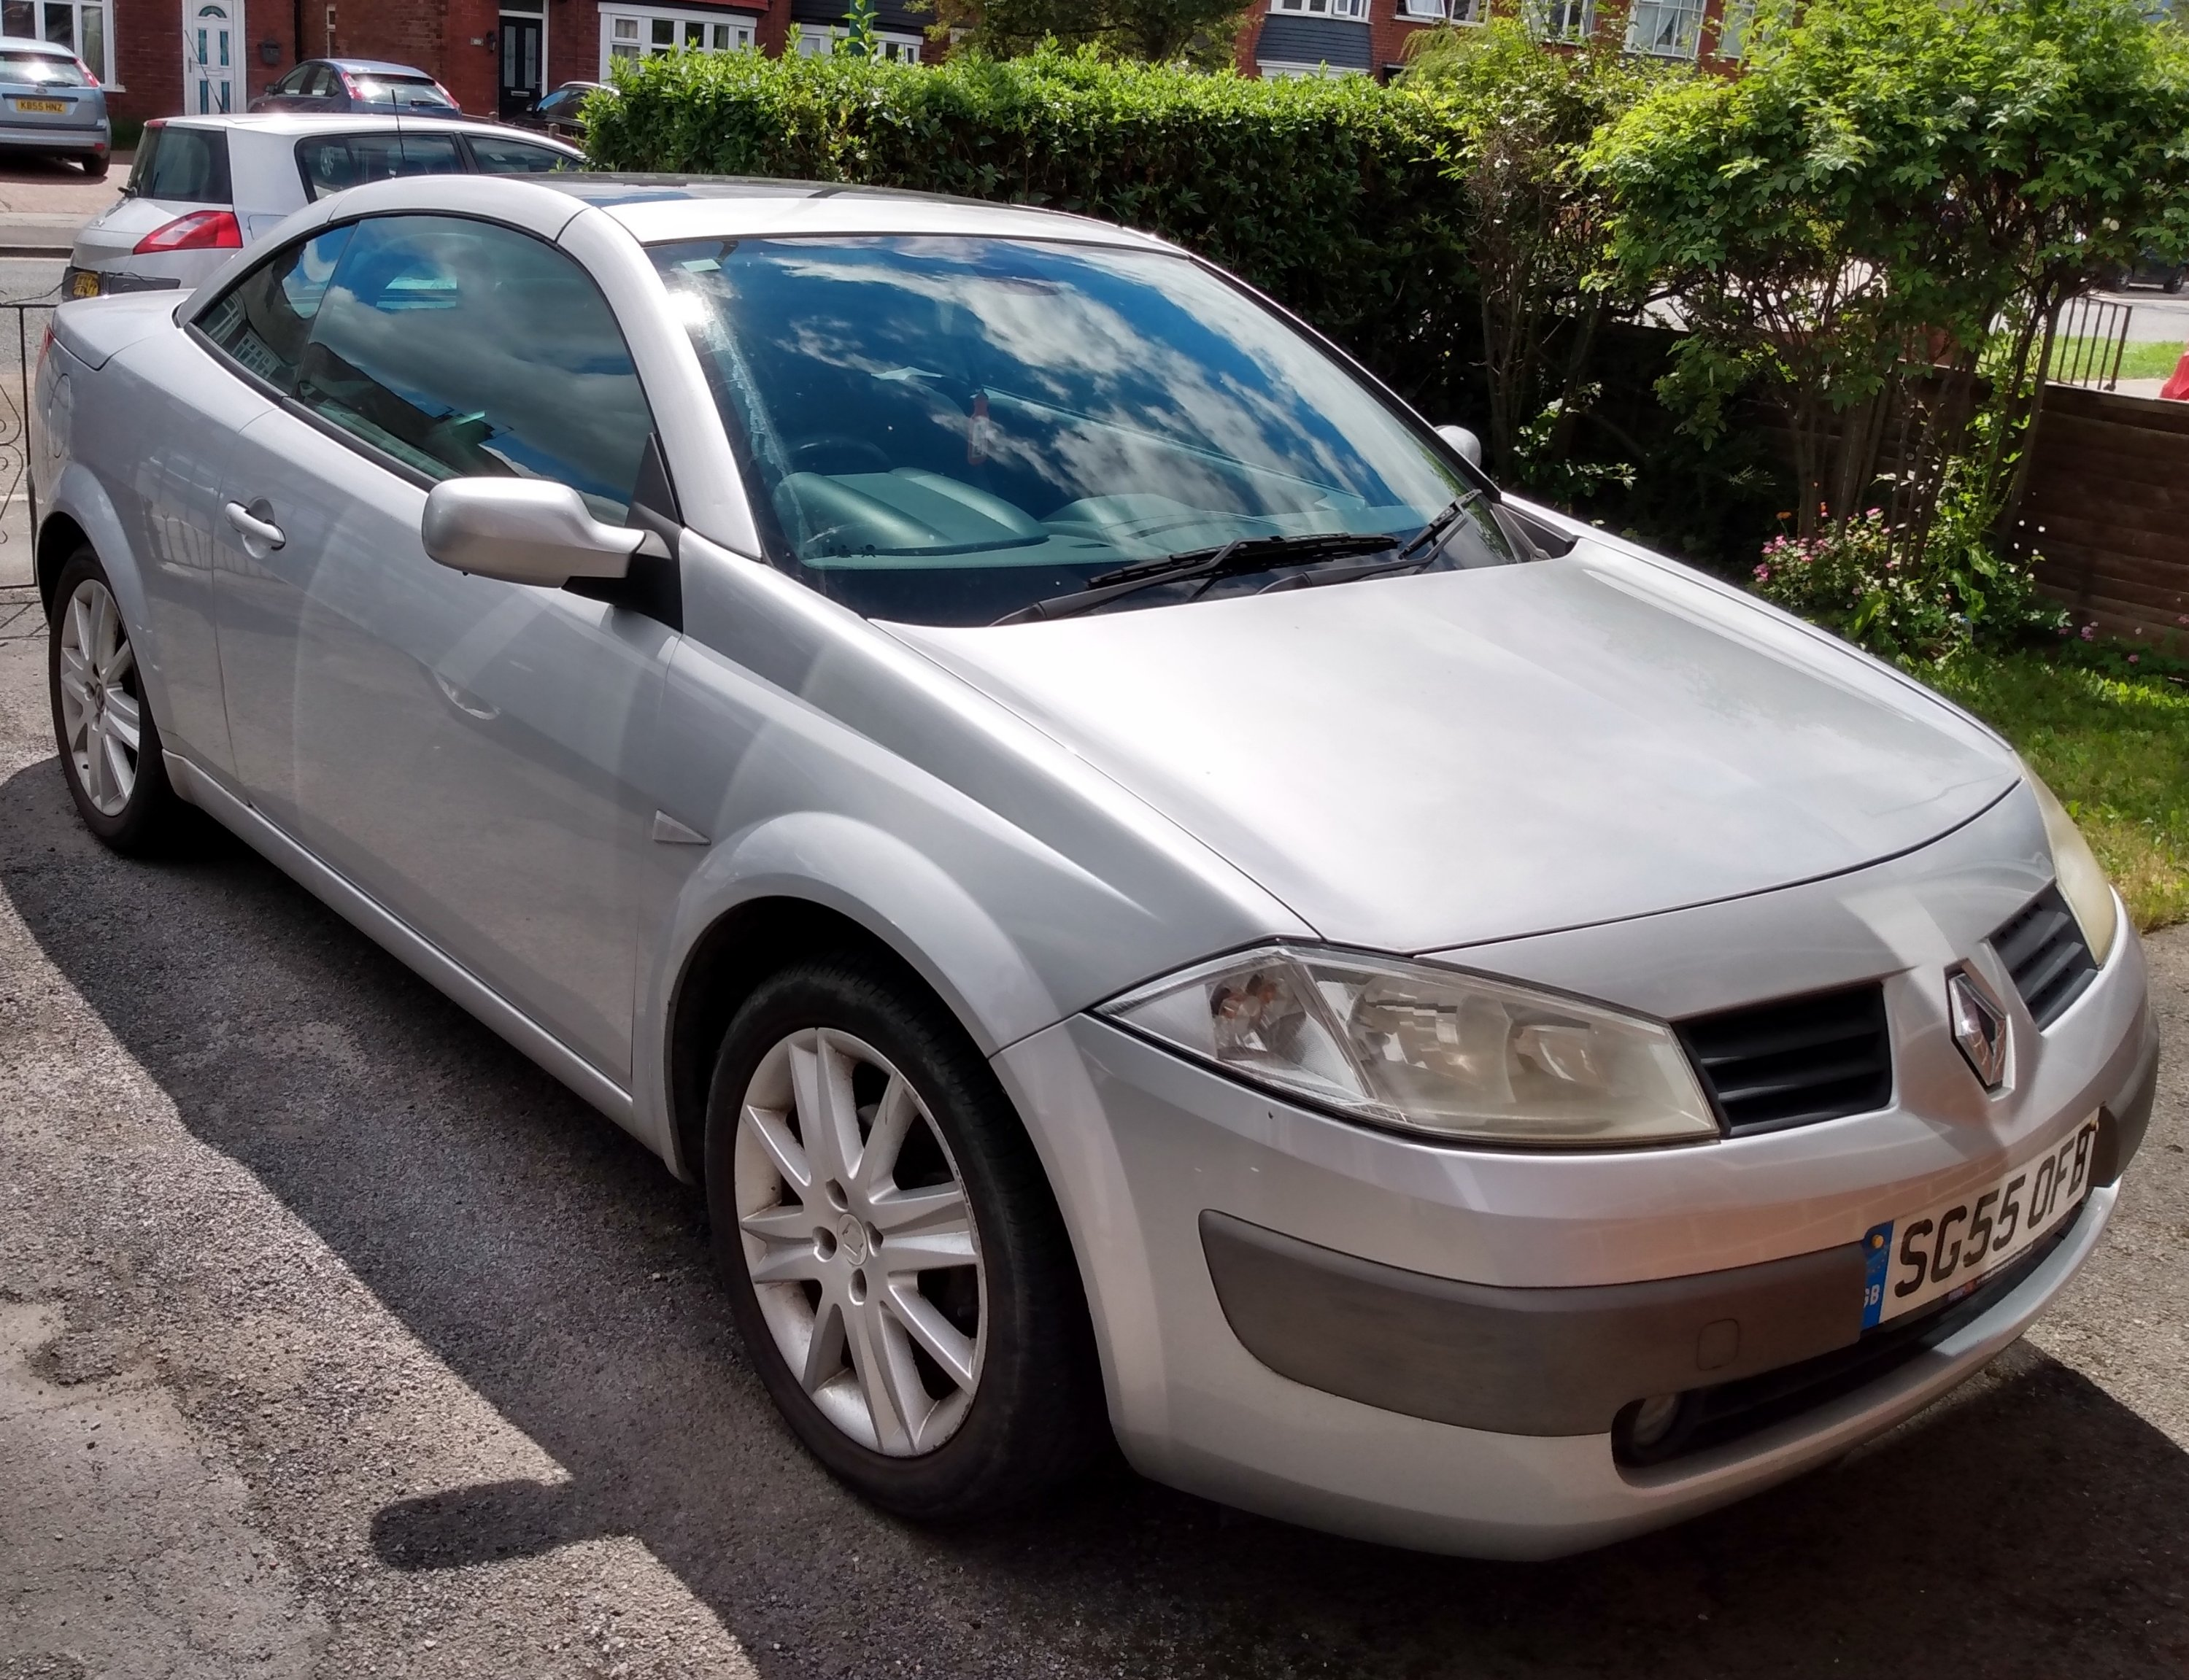 Fleet Update – New Arrival – Renault Mégane CC